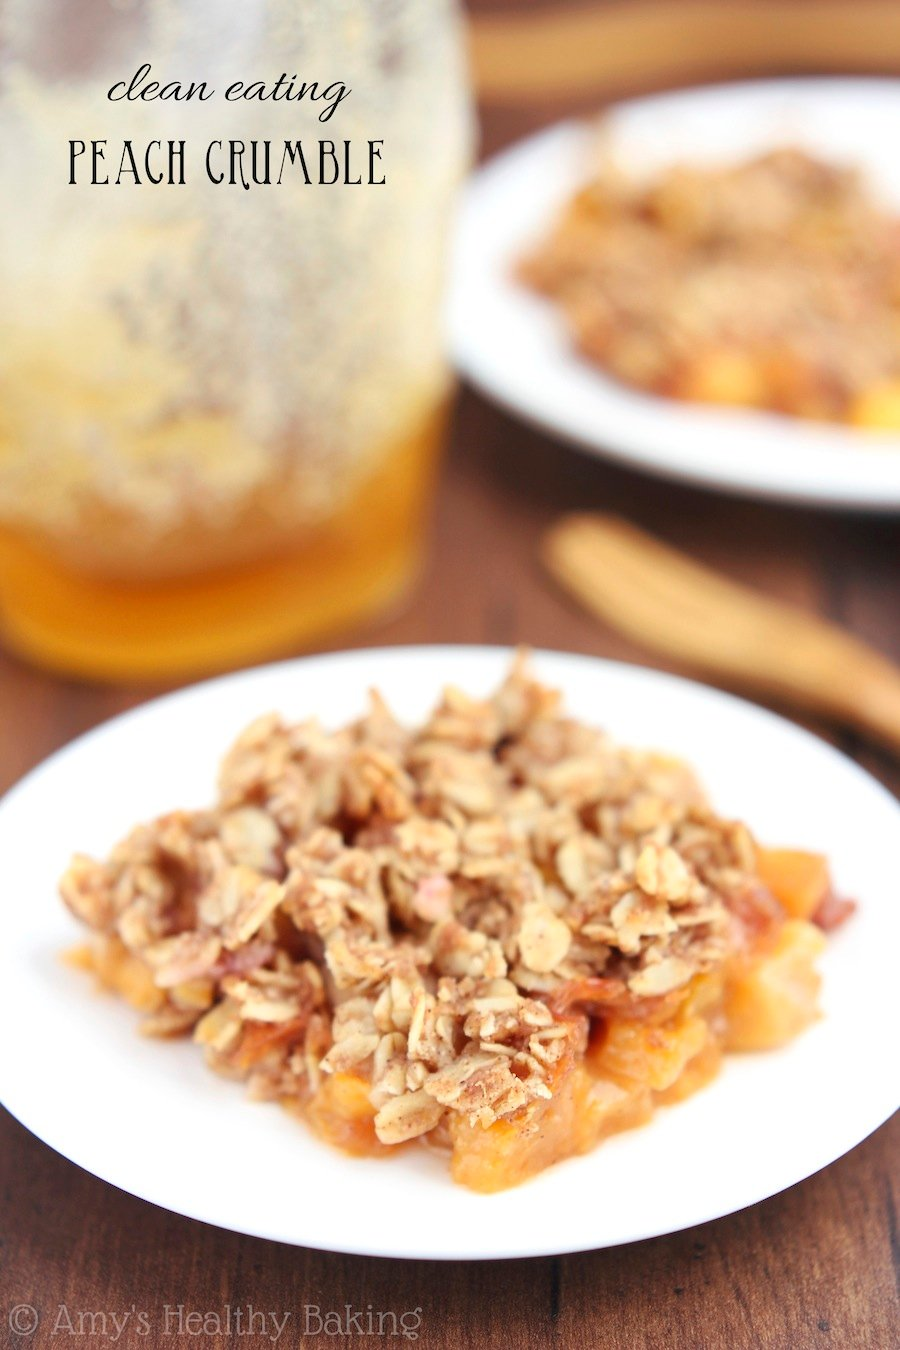 Easy and great for summer: Peach crumble recipe